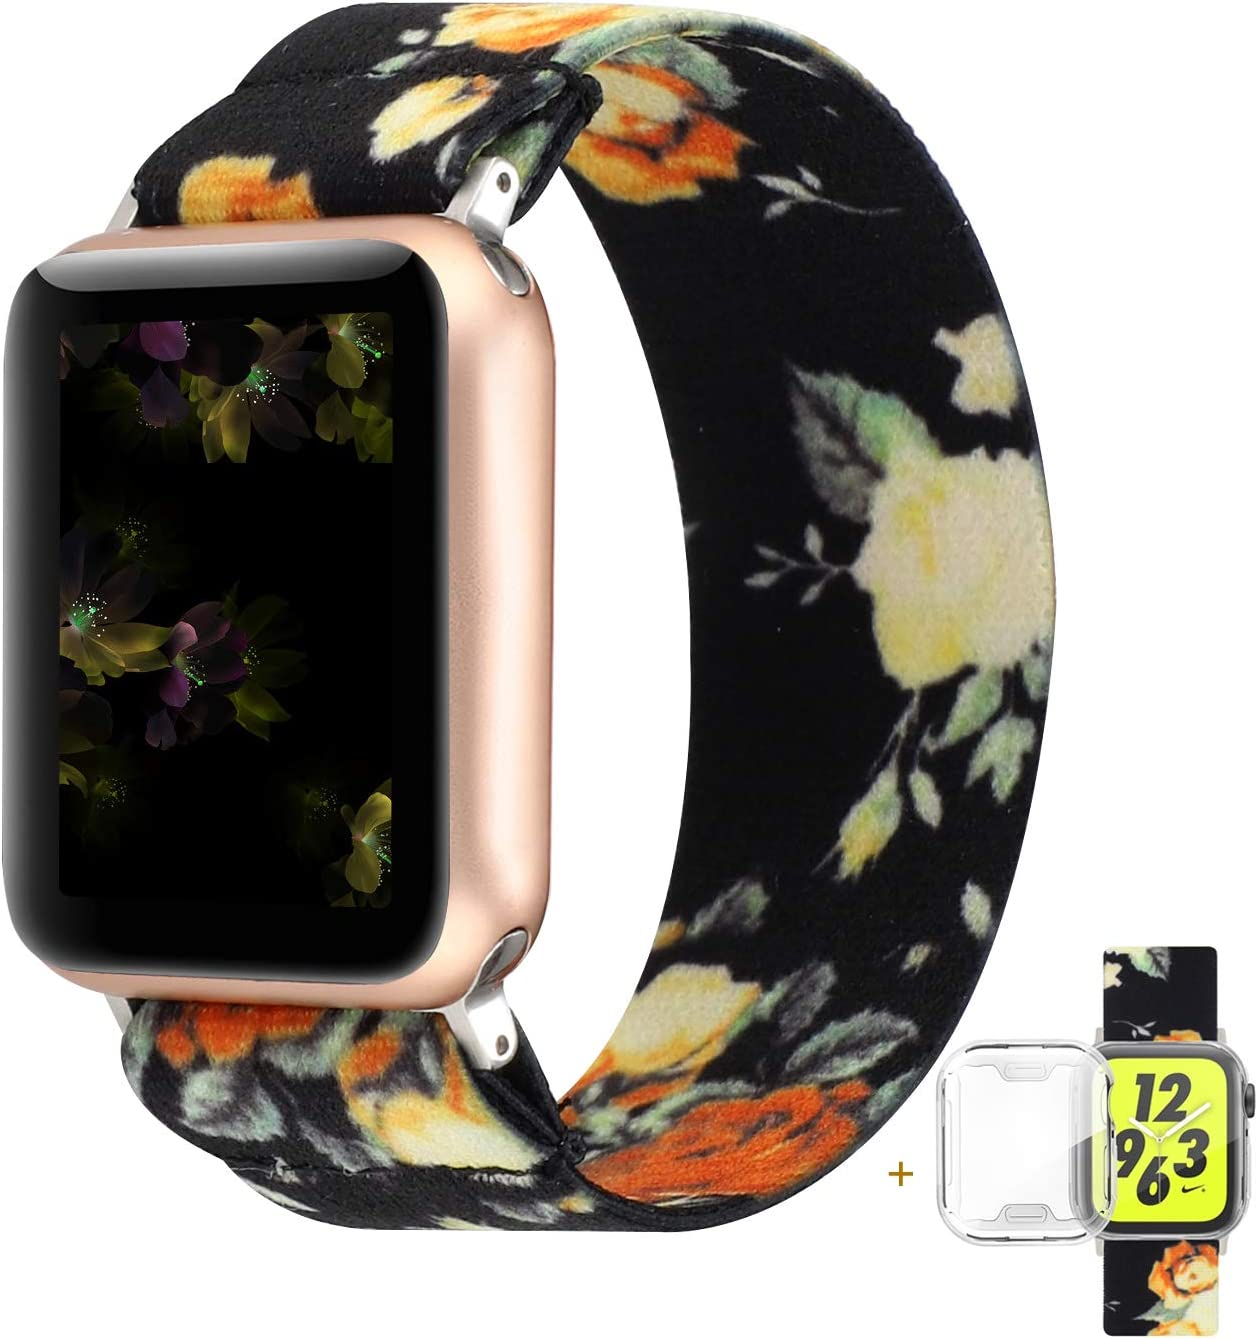 YOSWAN Compatible with Apple Watch Band 42mm 44mm Elastic Soft Nylon Solo Loop Starp Scrunchy Wristband, Women Men Cute Comfy Athletic Stretchy Bracelet Replacement Loop for iWatch SE Series 6 5 4 3 2 1 (Black Peony, 42mm/44mm S Size)